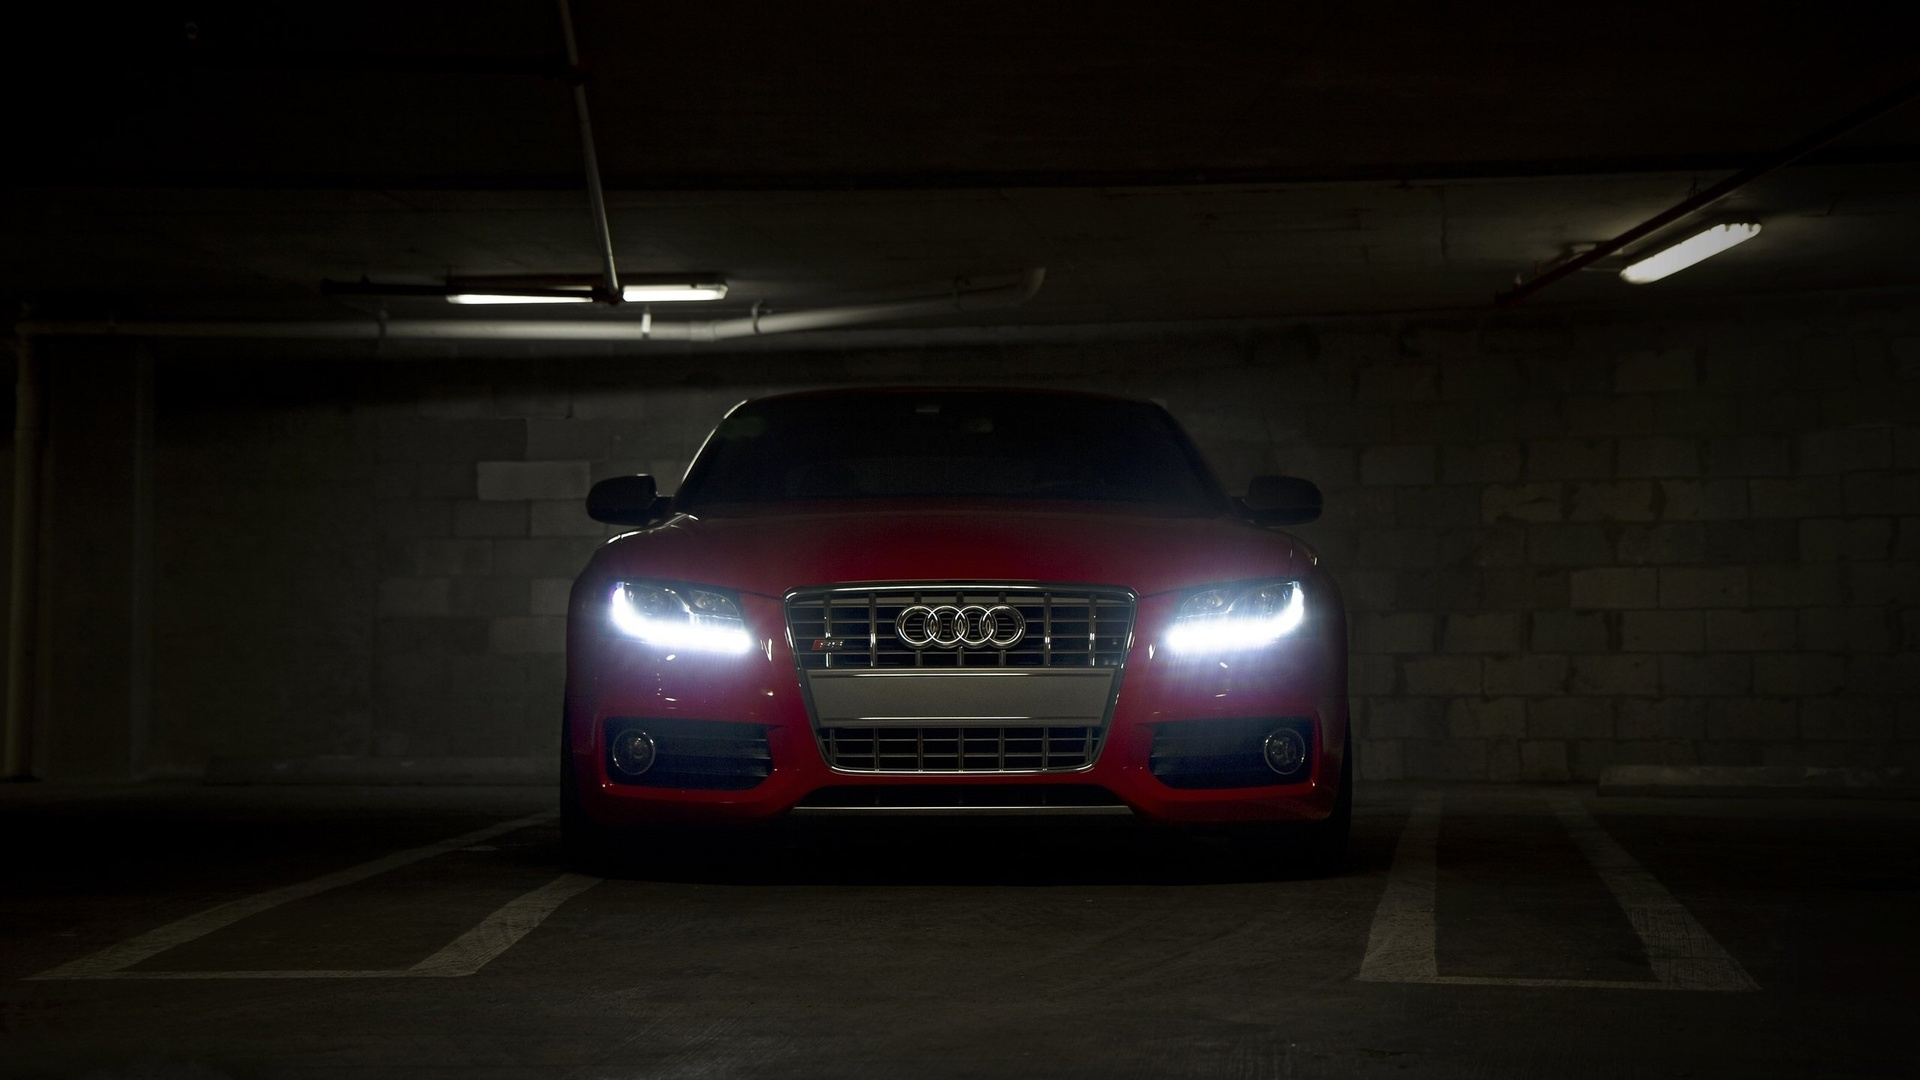 1920x1080 - Audi A5 Wallpapers 16